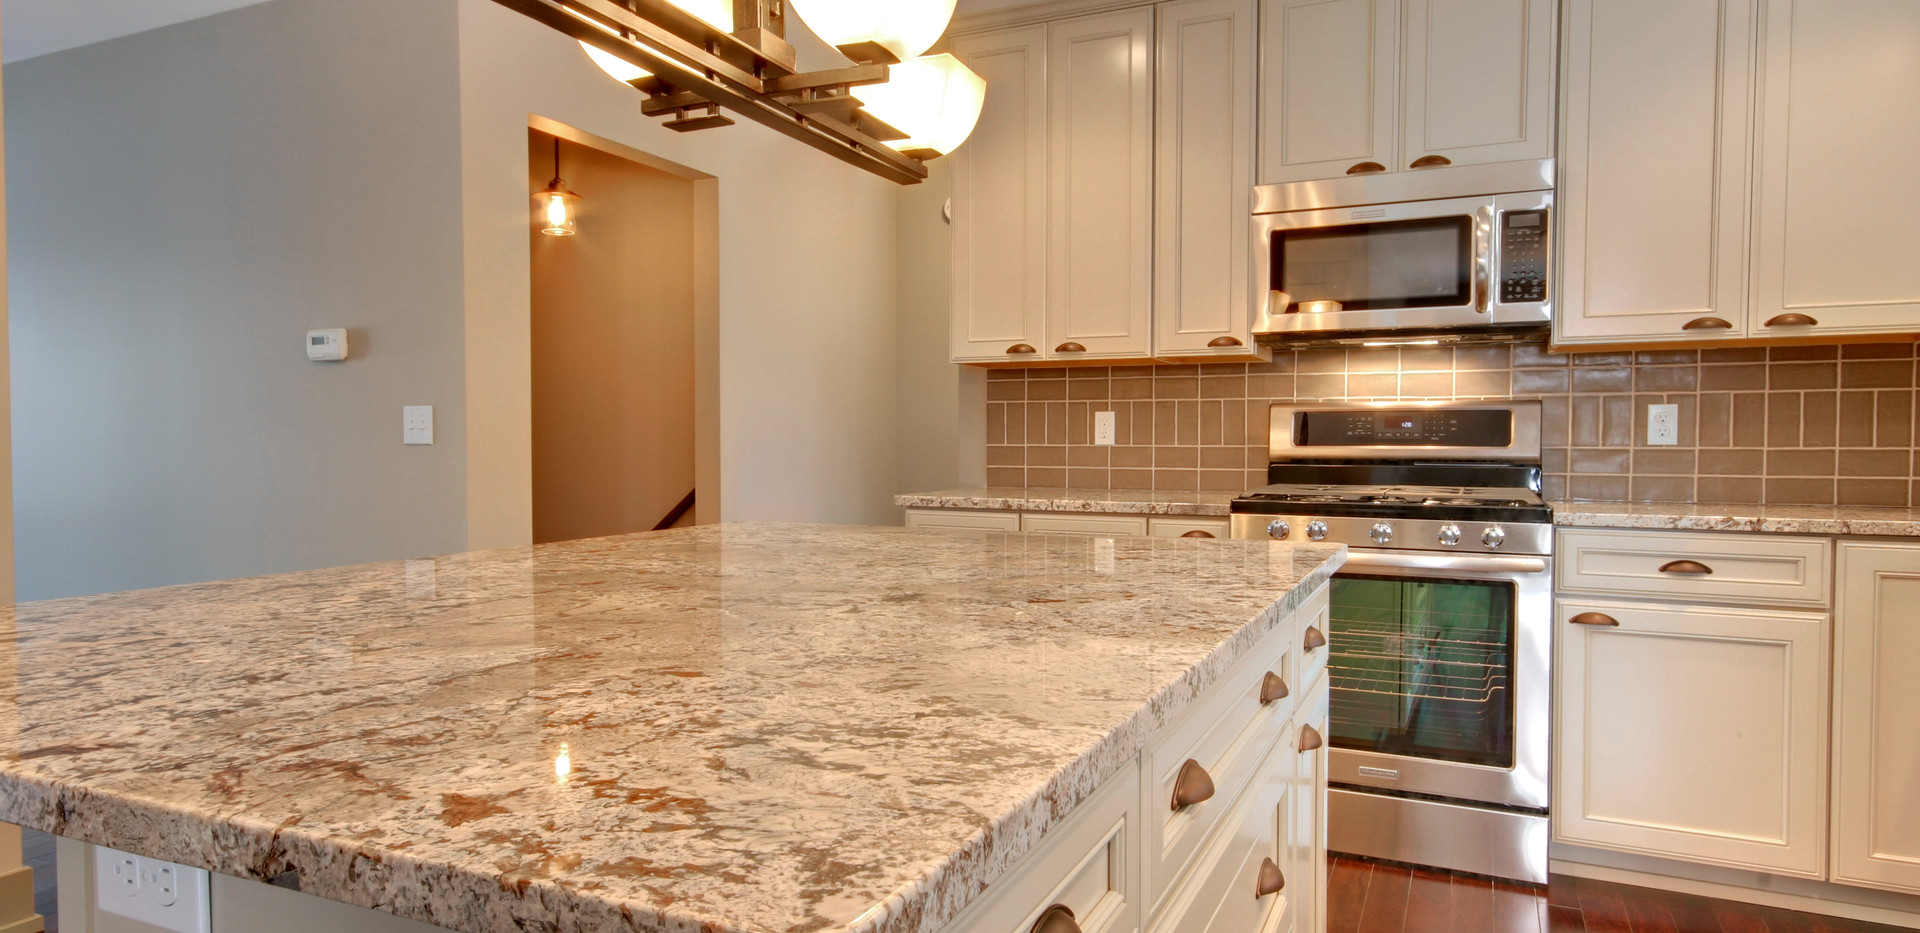 Granite counter top design of kitchen remodel by Renew Home Improvement remodeling contractor